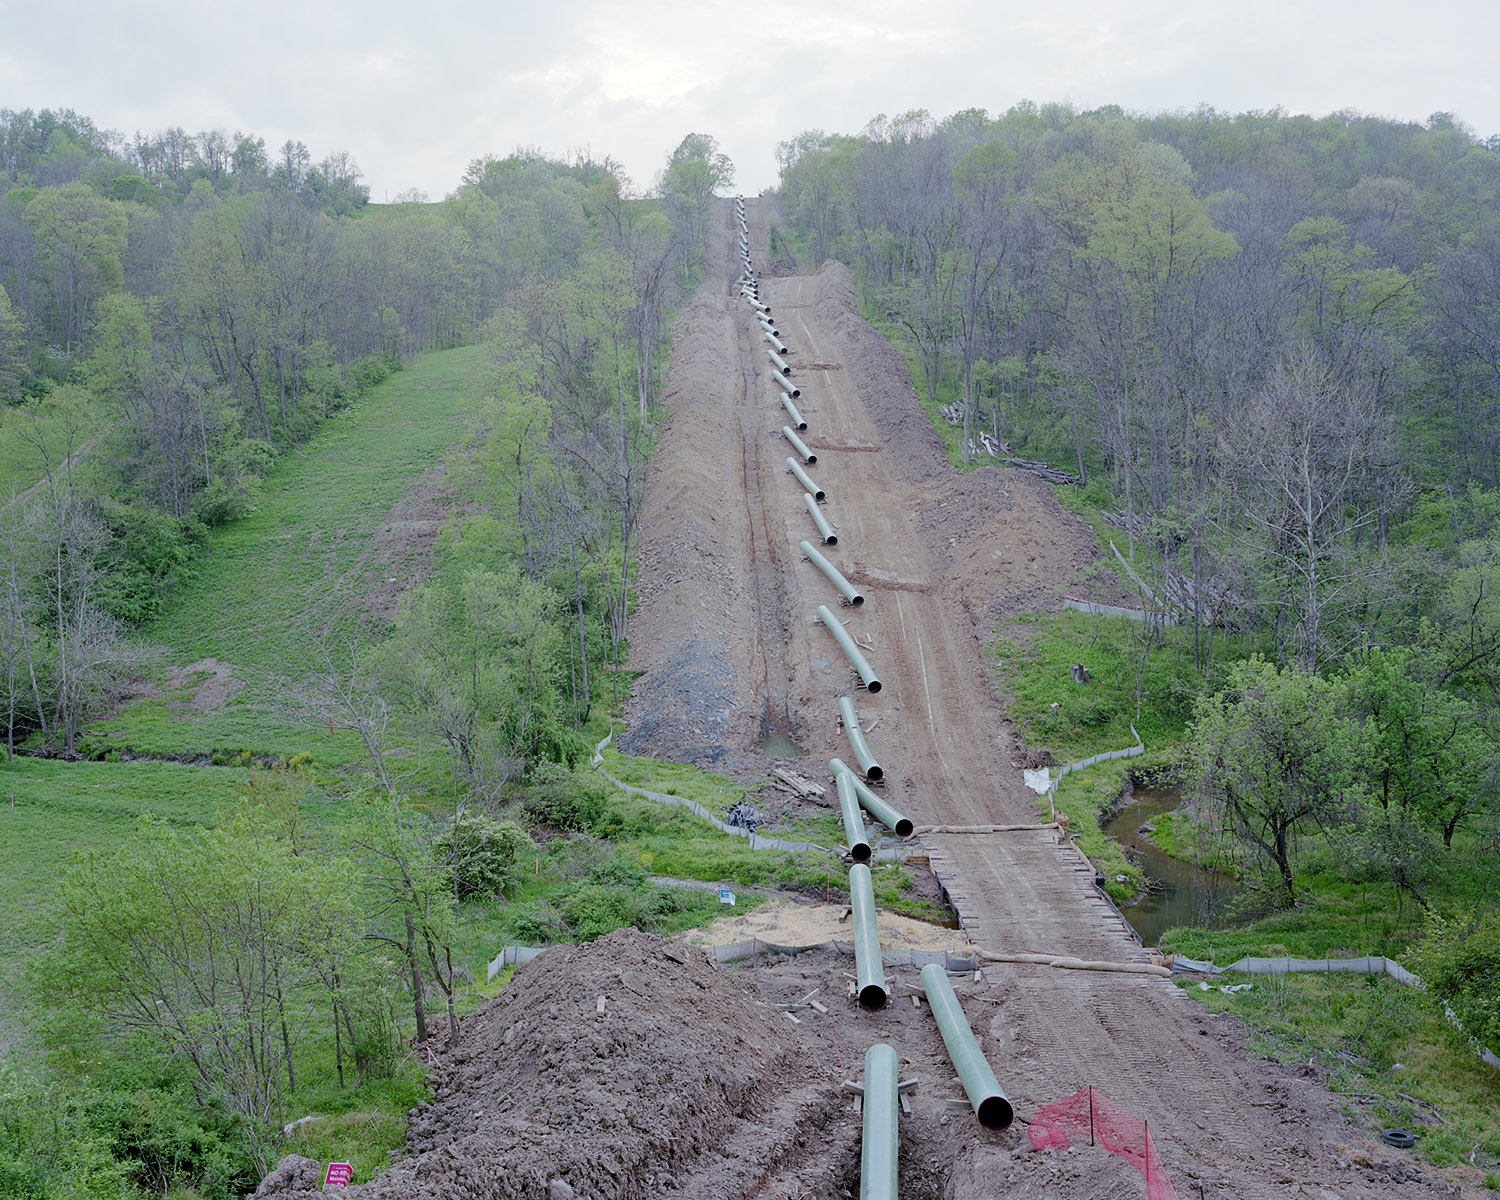 View of a natural-gas pipeline under construction in Franklin Township, PA on 05/01/2012.  © Noah Addis/MSDP 2012